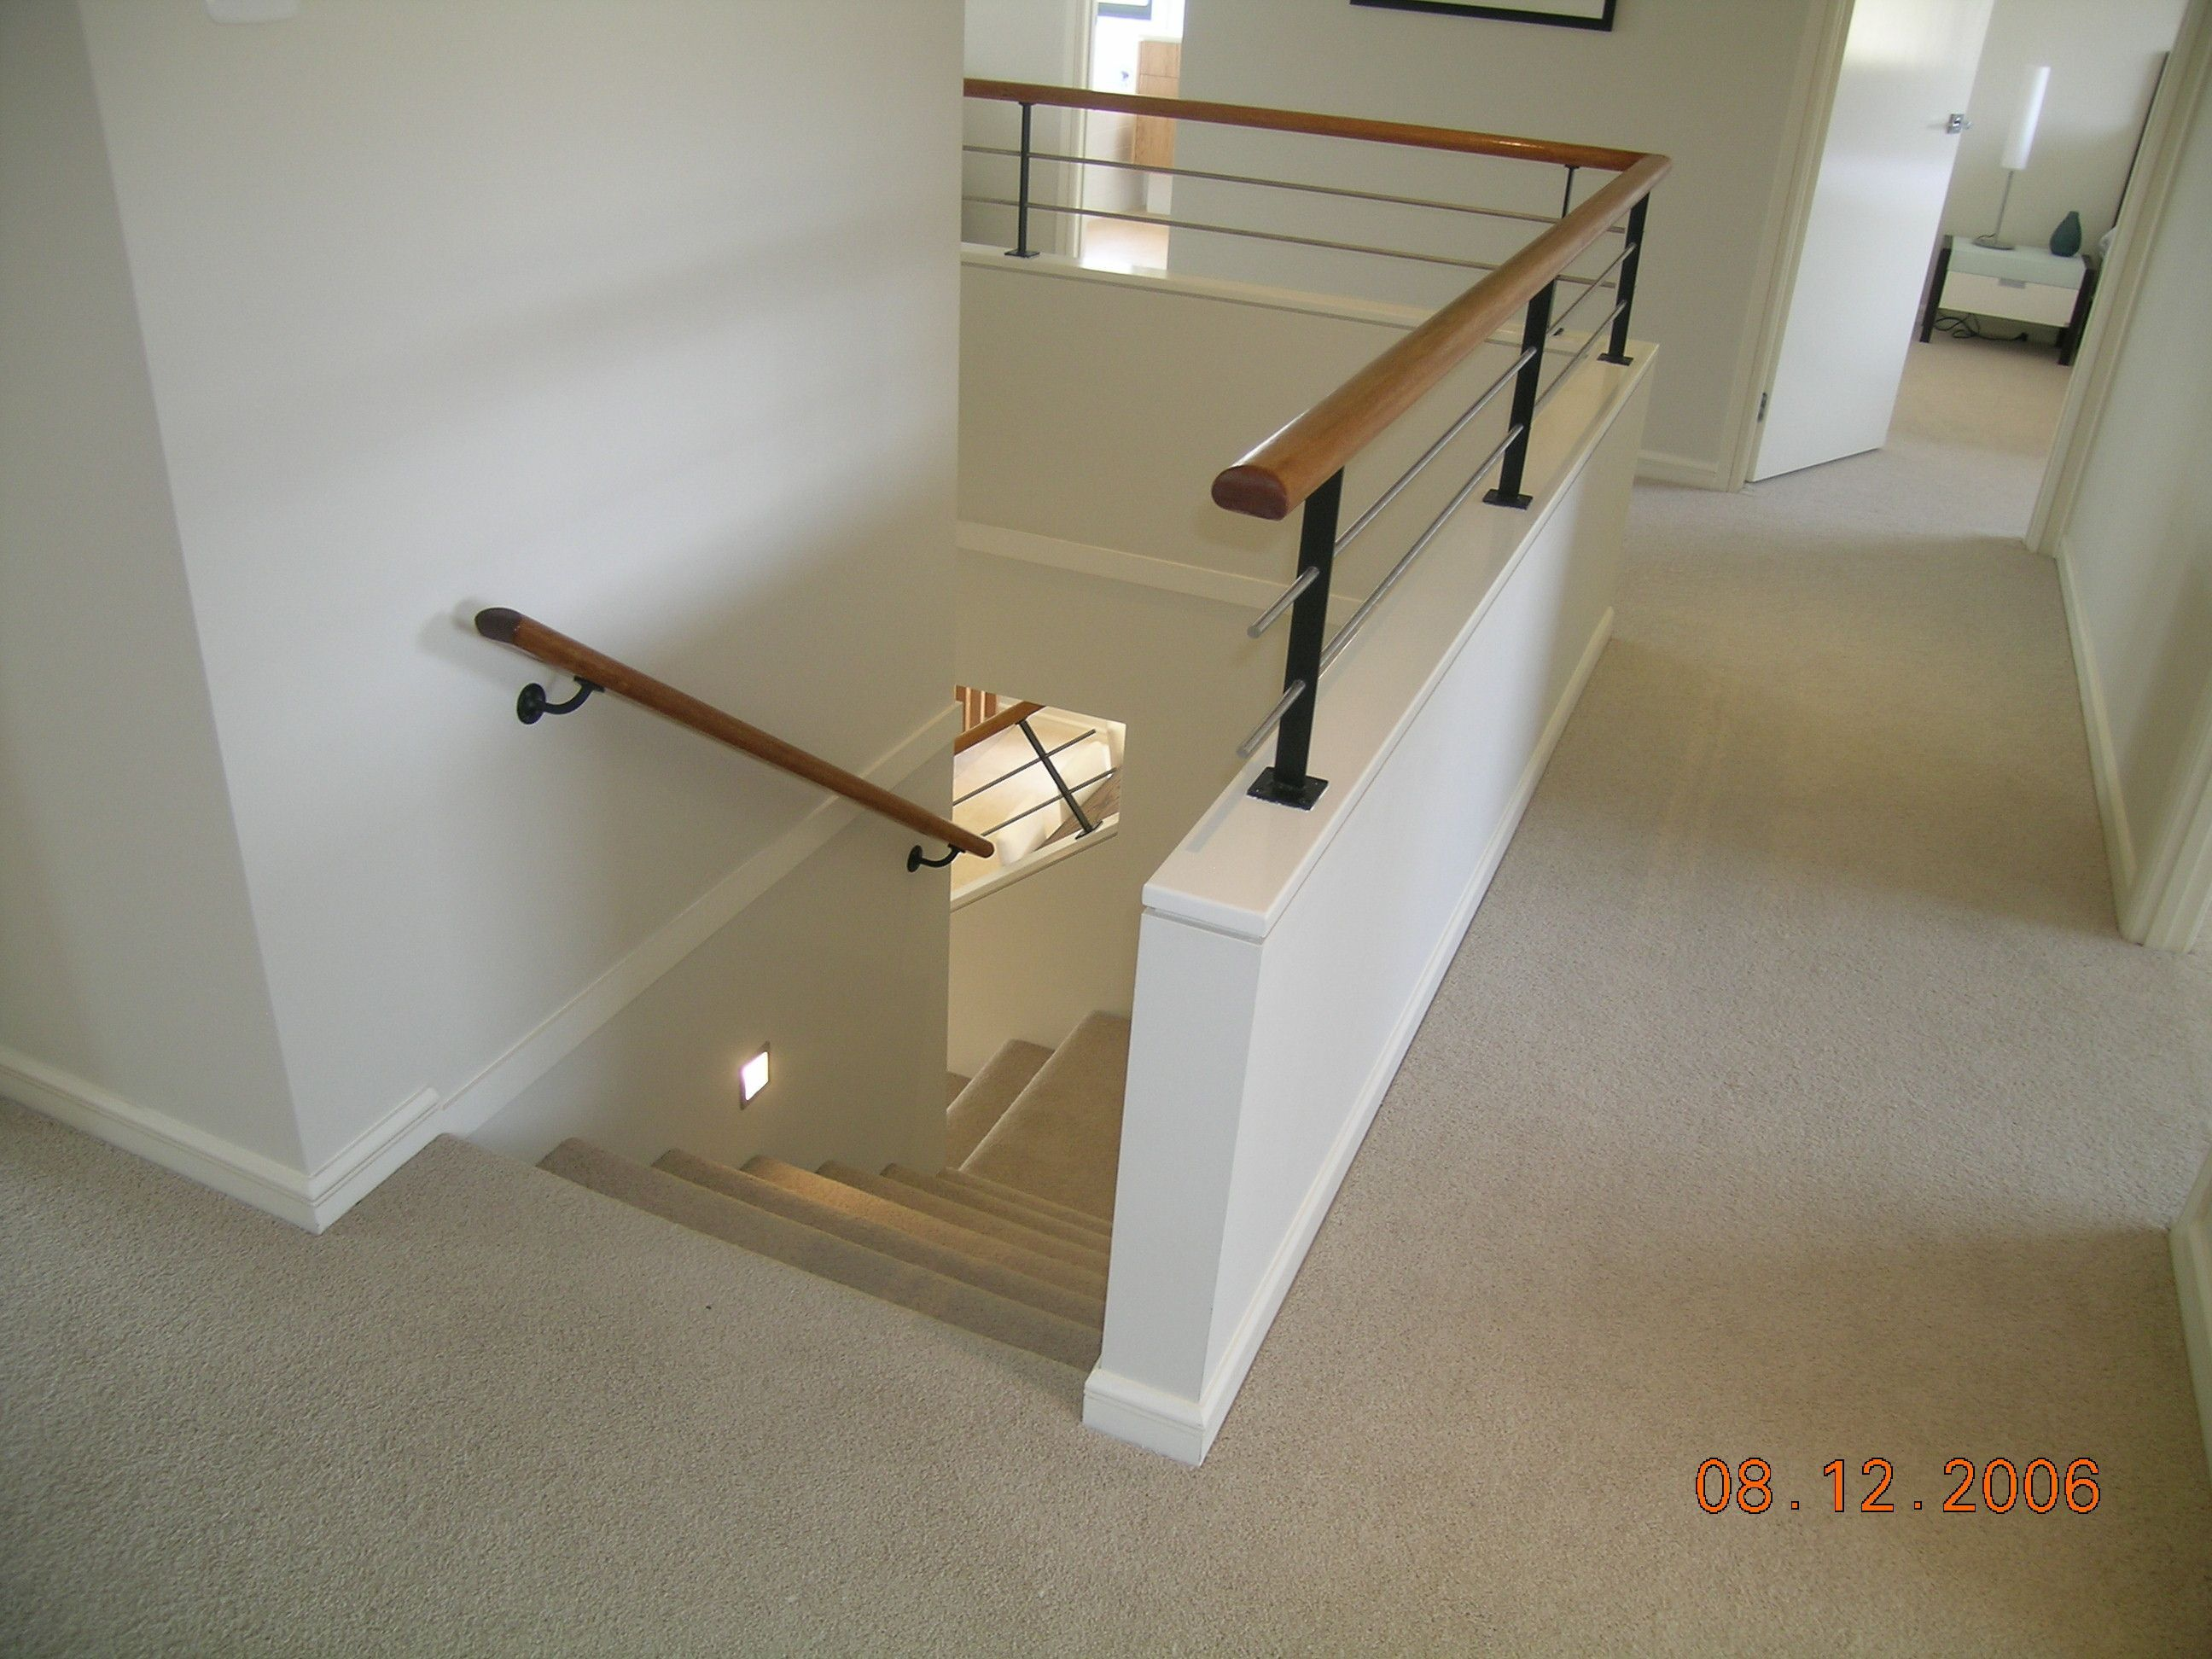 Knee Wall Cap Ideas Unique Half Wall Timber Handrail Stainless Steel Rails And Black Powder Loft Railing Interior Railings Wall Railing